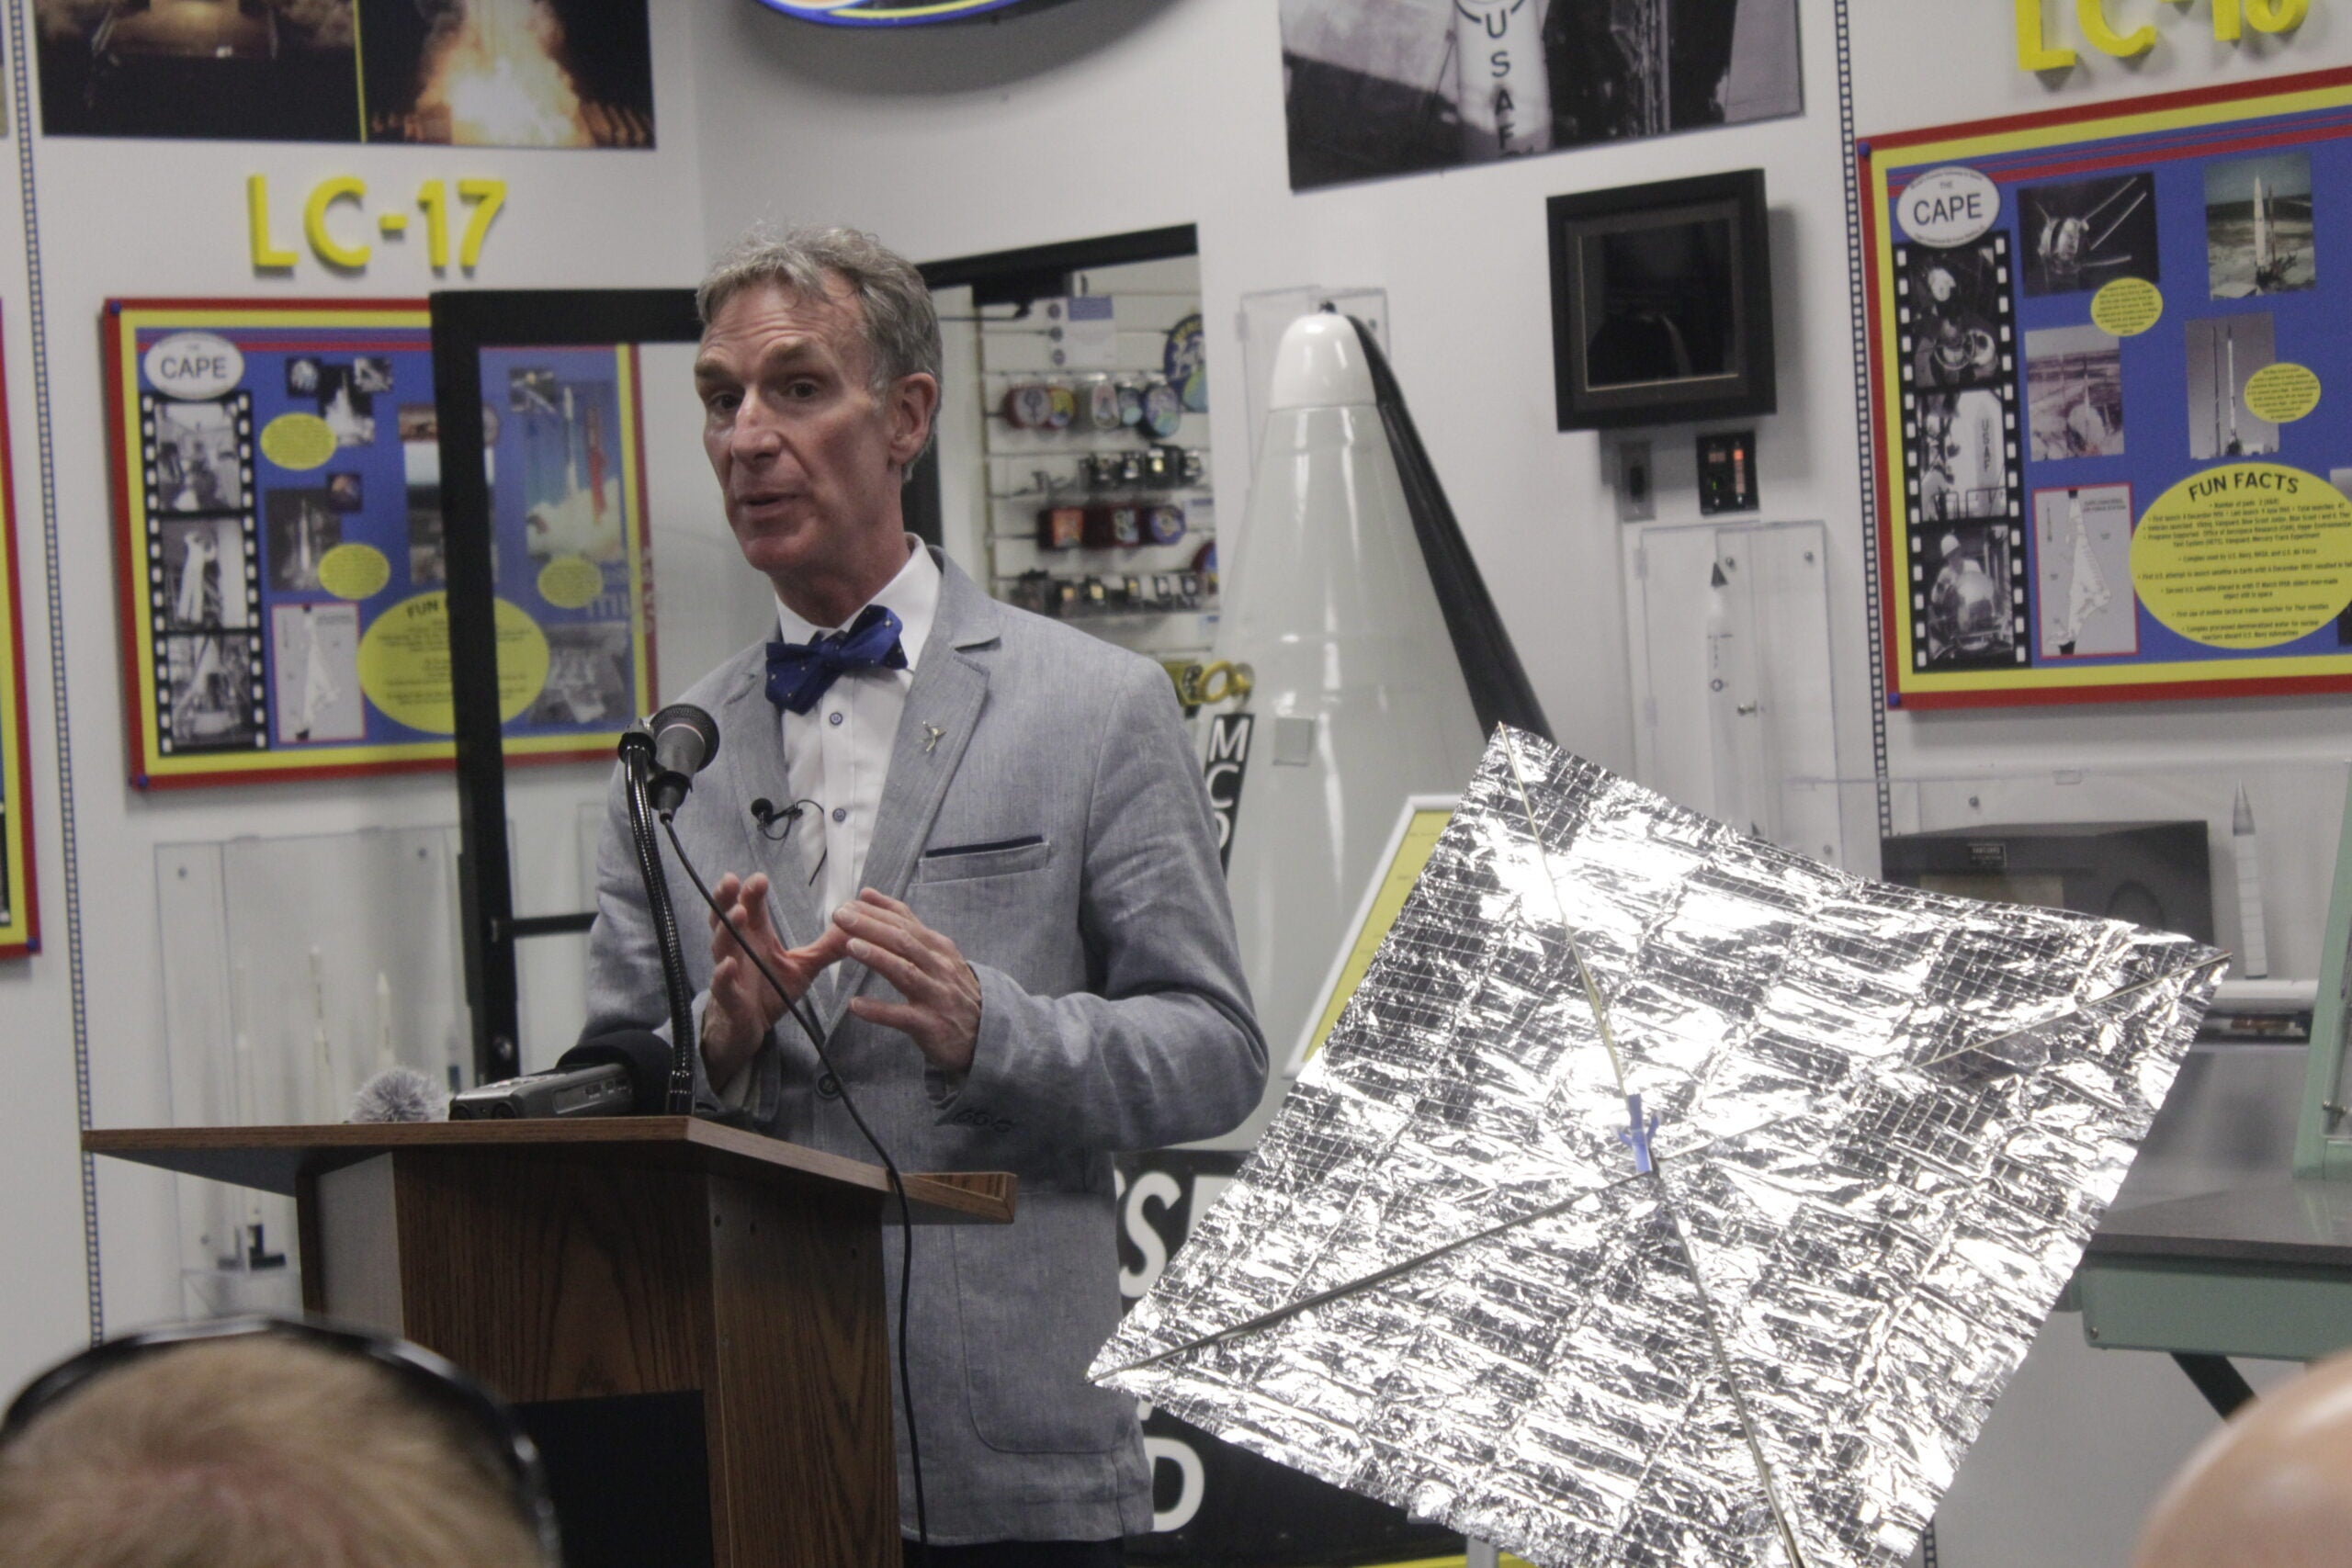 'The Science Guy' Talks About His Space Sail